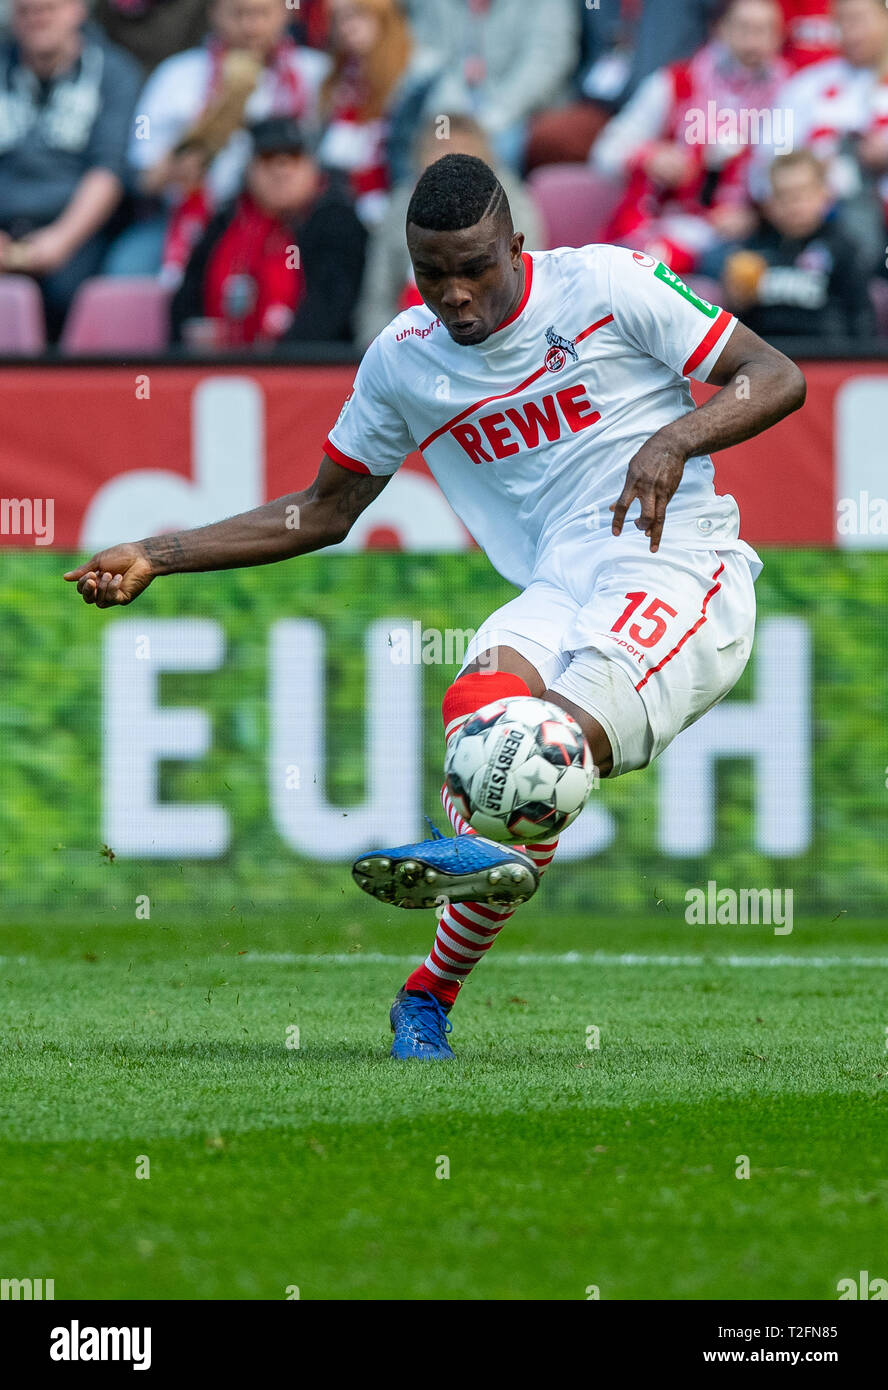 31 March 2019, North Rhine-Westphalia, Köln: Soccer: 2nd Bundesliga, 1st FC Cologne - Holstein Kiel, 27th matchday in the Rhein-Energie-Stadion. Cologne's Jhon Cordoba shoots the ball at the goal. Photo: Guido Kirchner/dpa - IMPORTANT NOTE: In accordance with the requirements of the DFL Deutsche Fußball Liga or the DFB Deutscher Fußball-Bund, it is prohibited to use or have used photographs taken in the stadium and/or the match in the form of sequence images and/or video-like photo sequences. Stock Photo